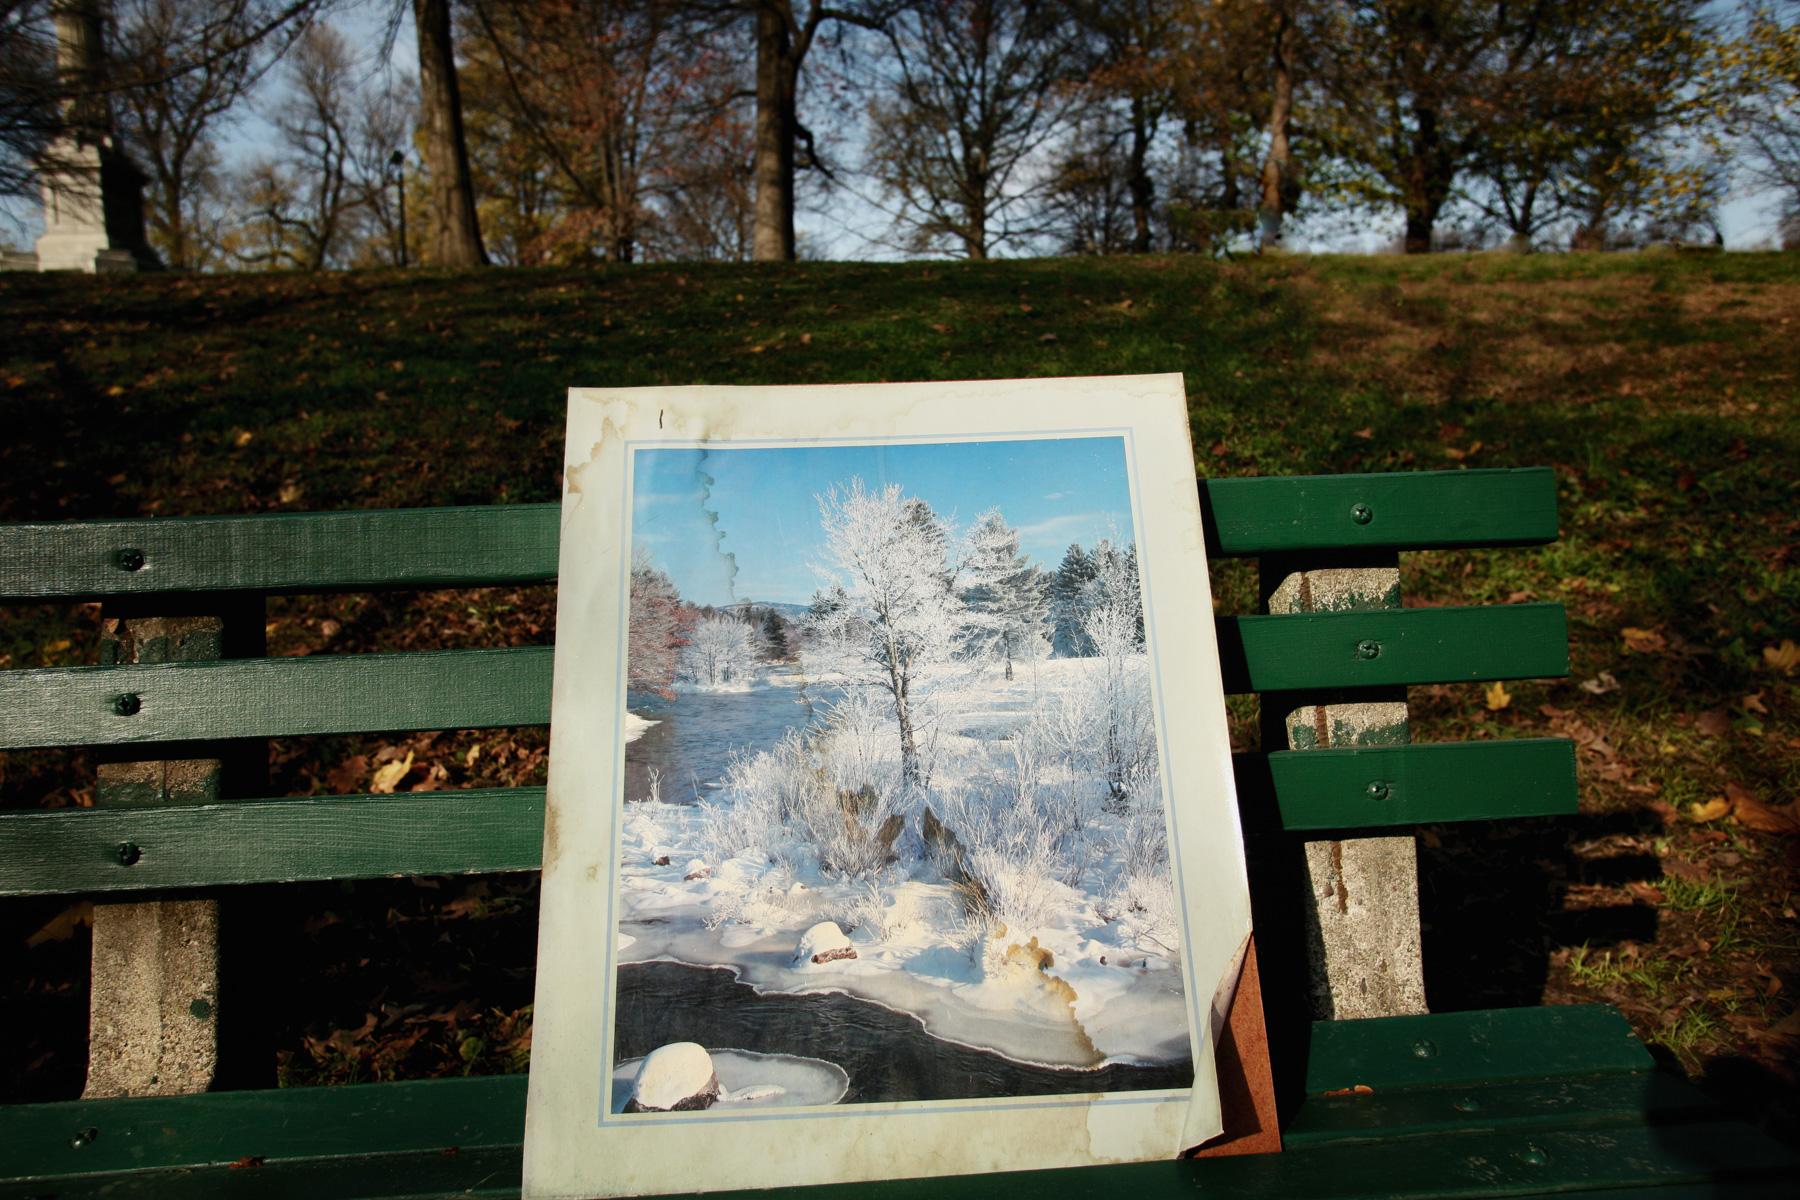 winter-painting-park-1.jpg